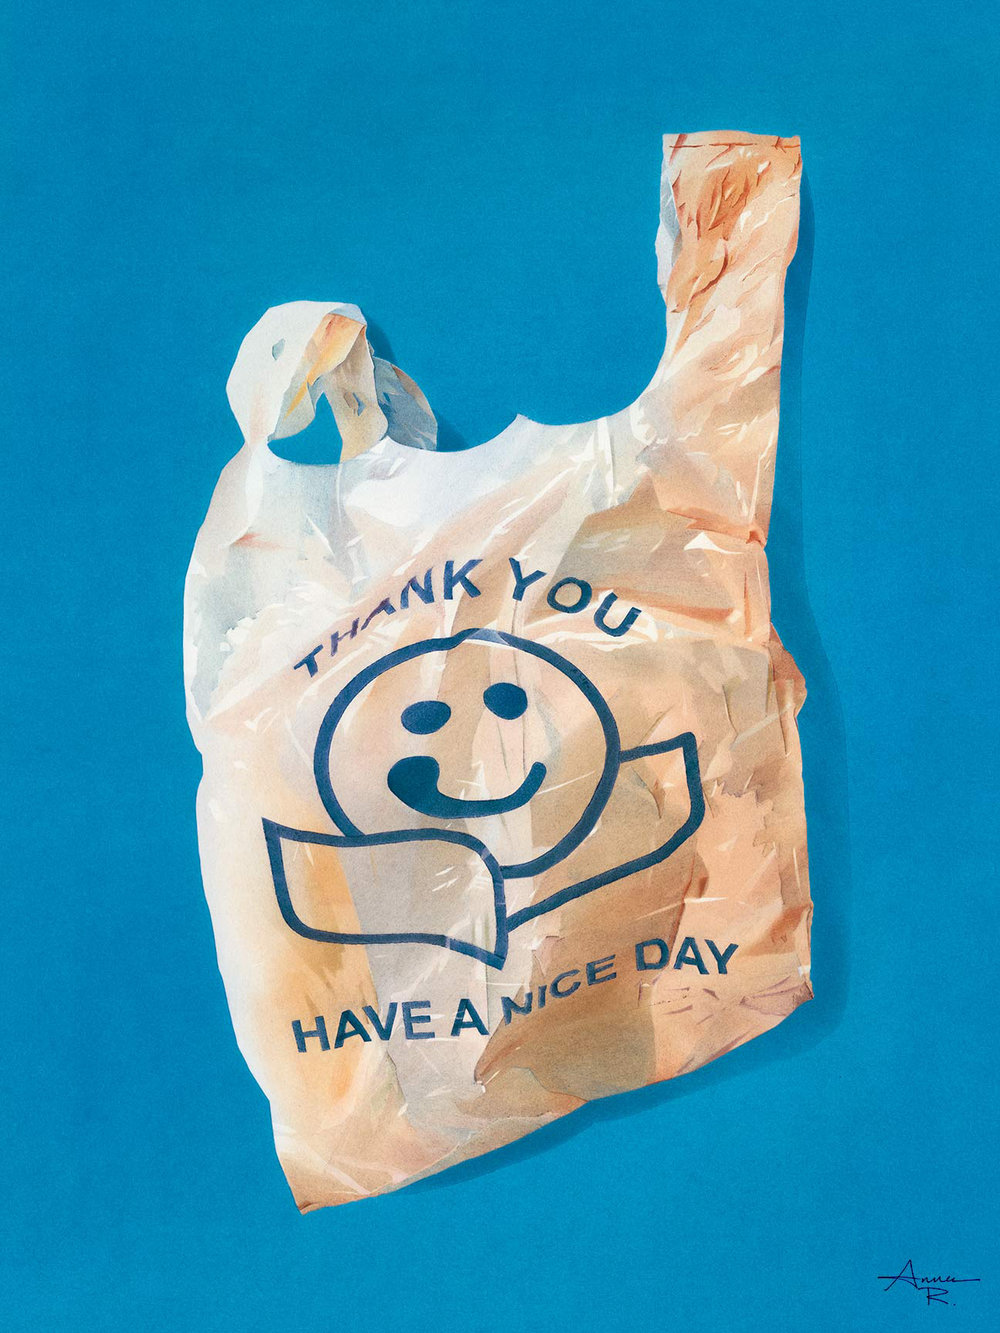 THANK YOU, HAVE A NICE DAY.jpg